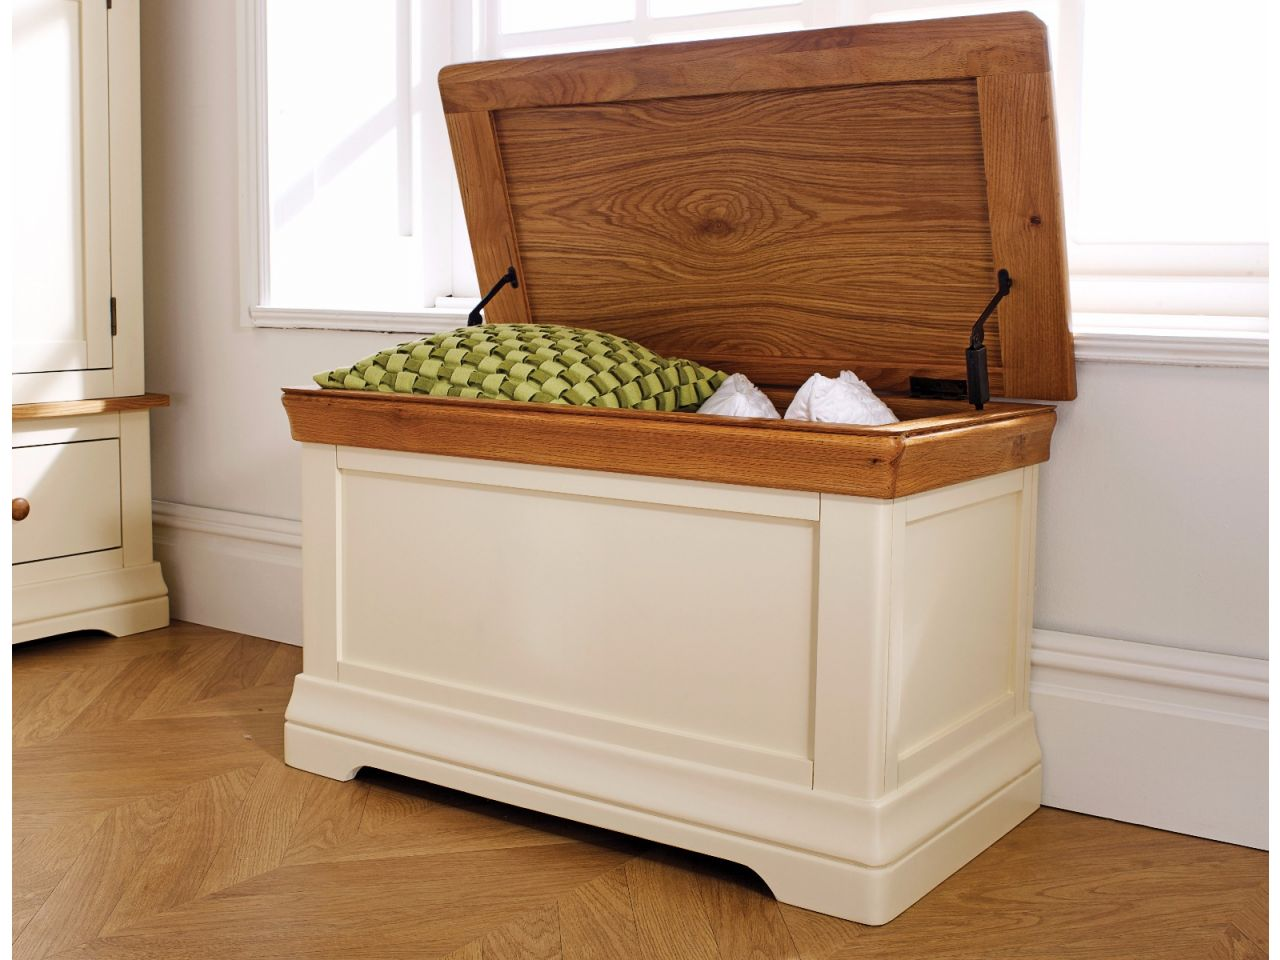 Farmhouse Cream Painted Storage Oak Blanket Box Free